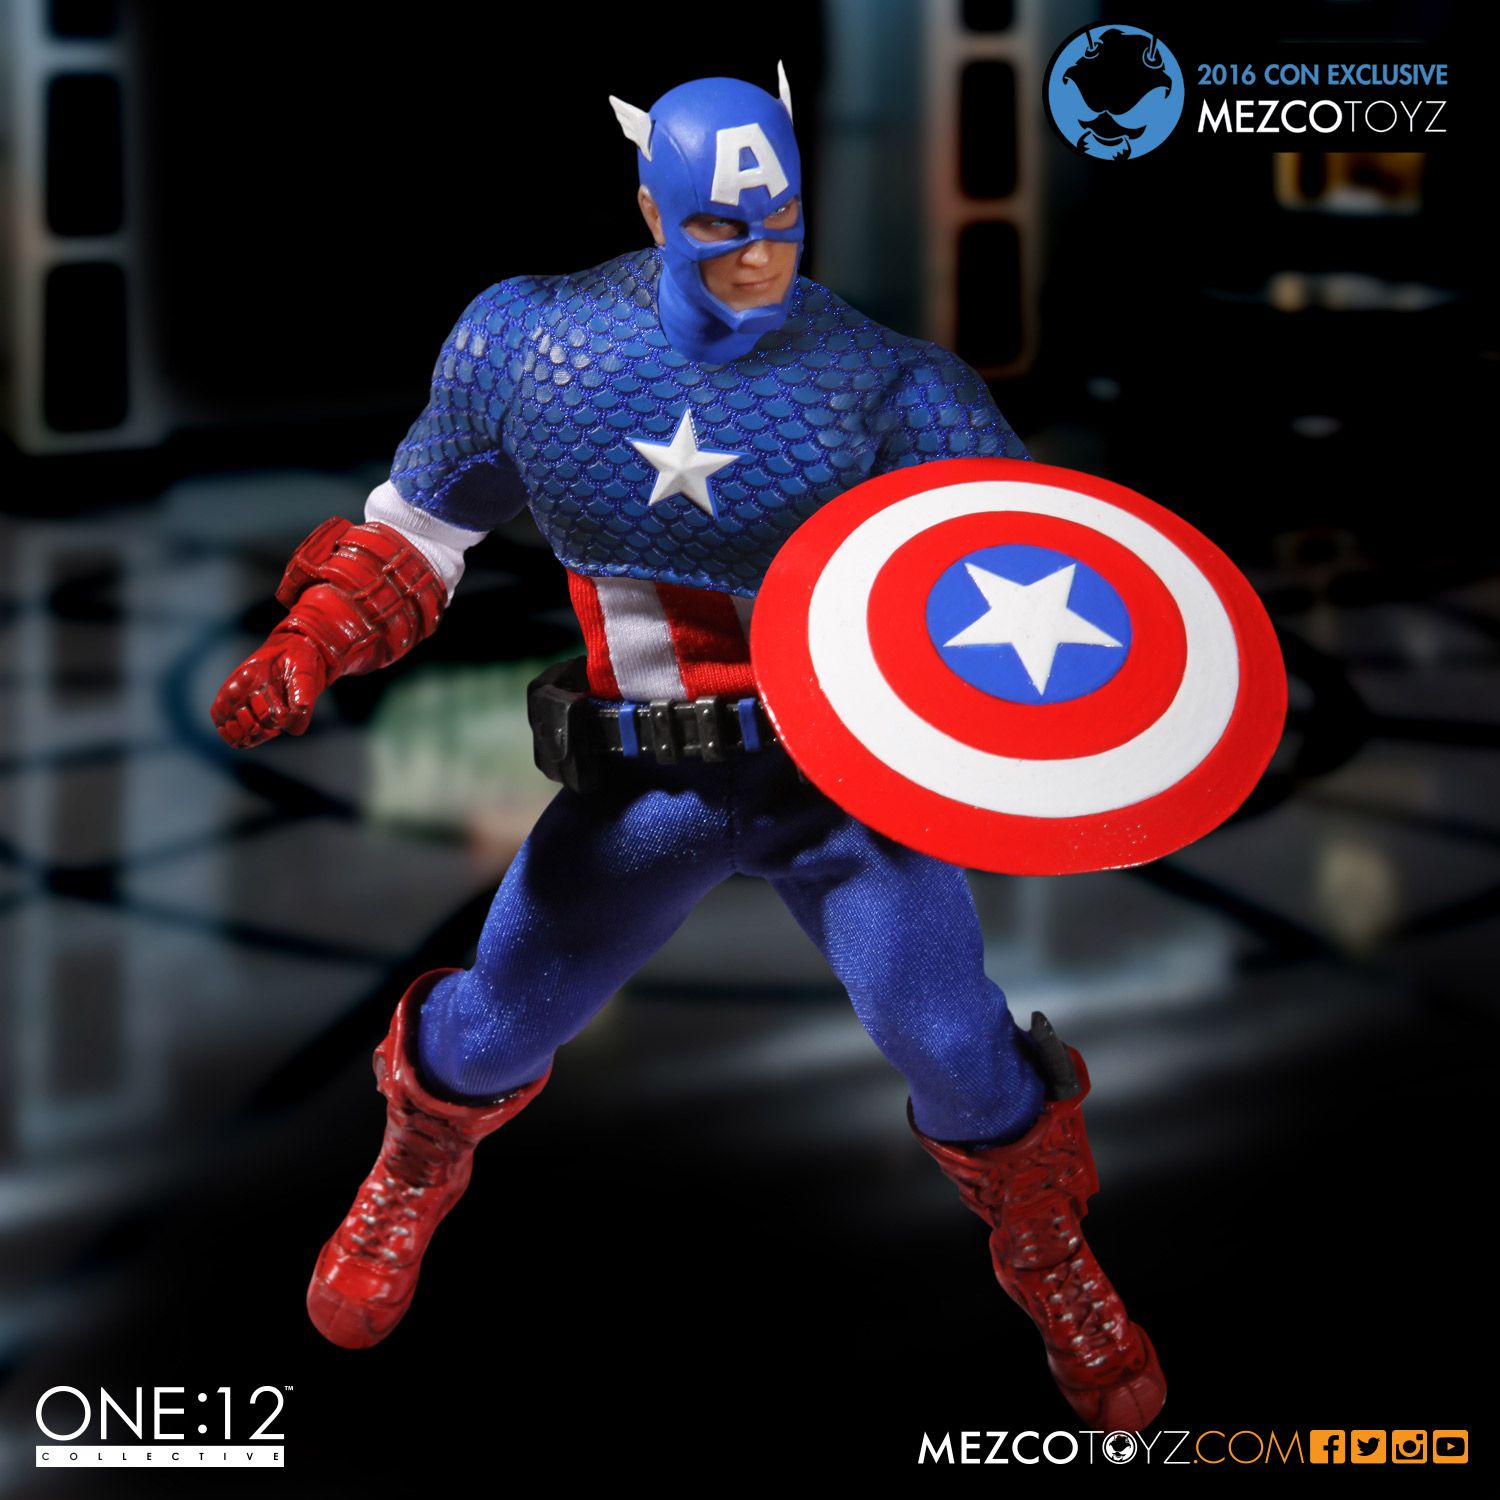 Mezco SDCC 2016 Exclusives Now Available To Pre-Order